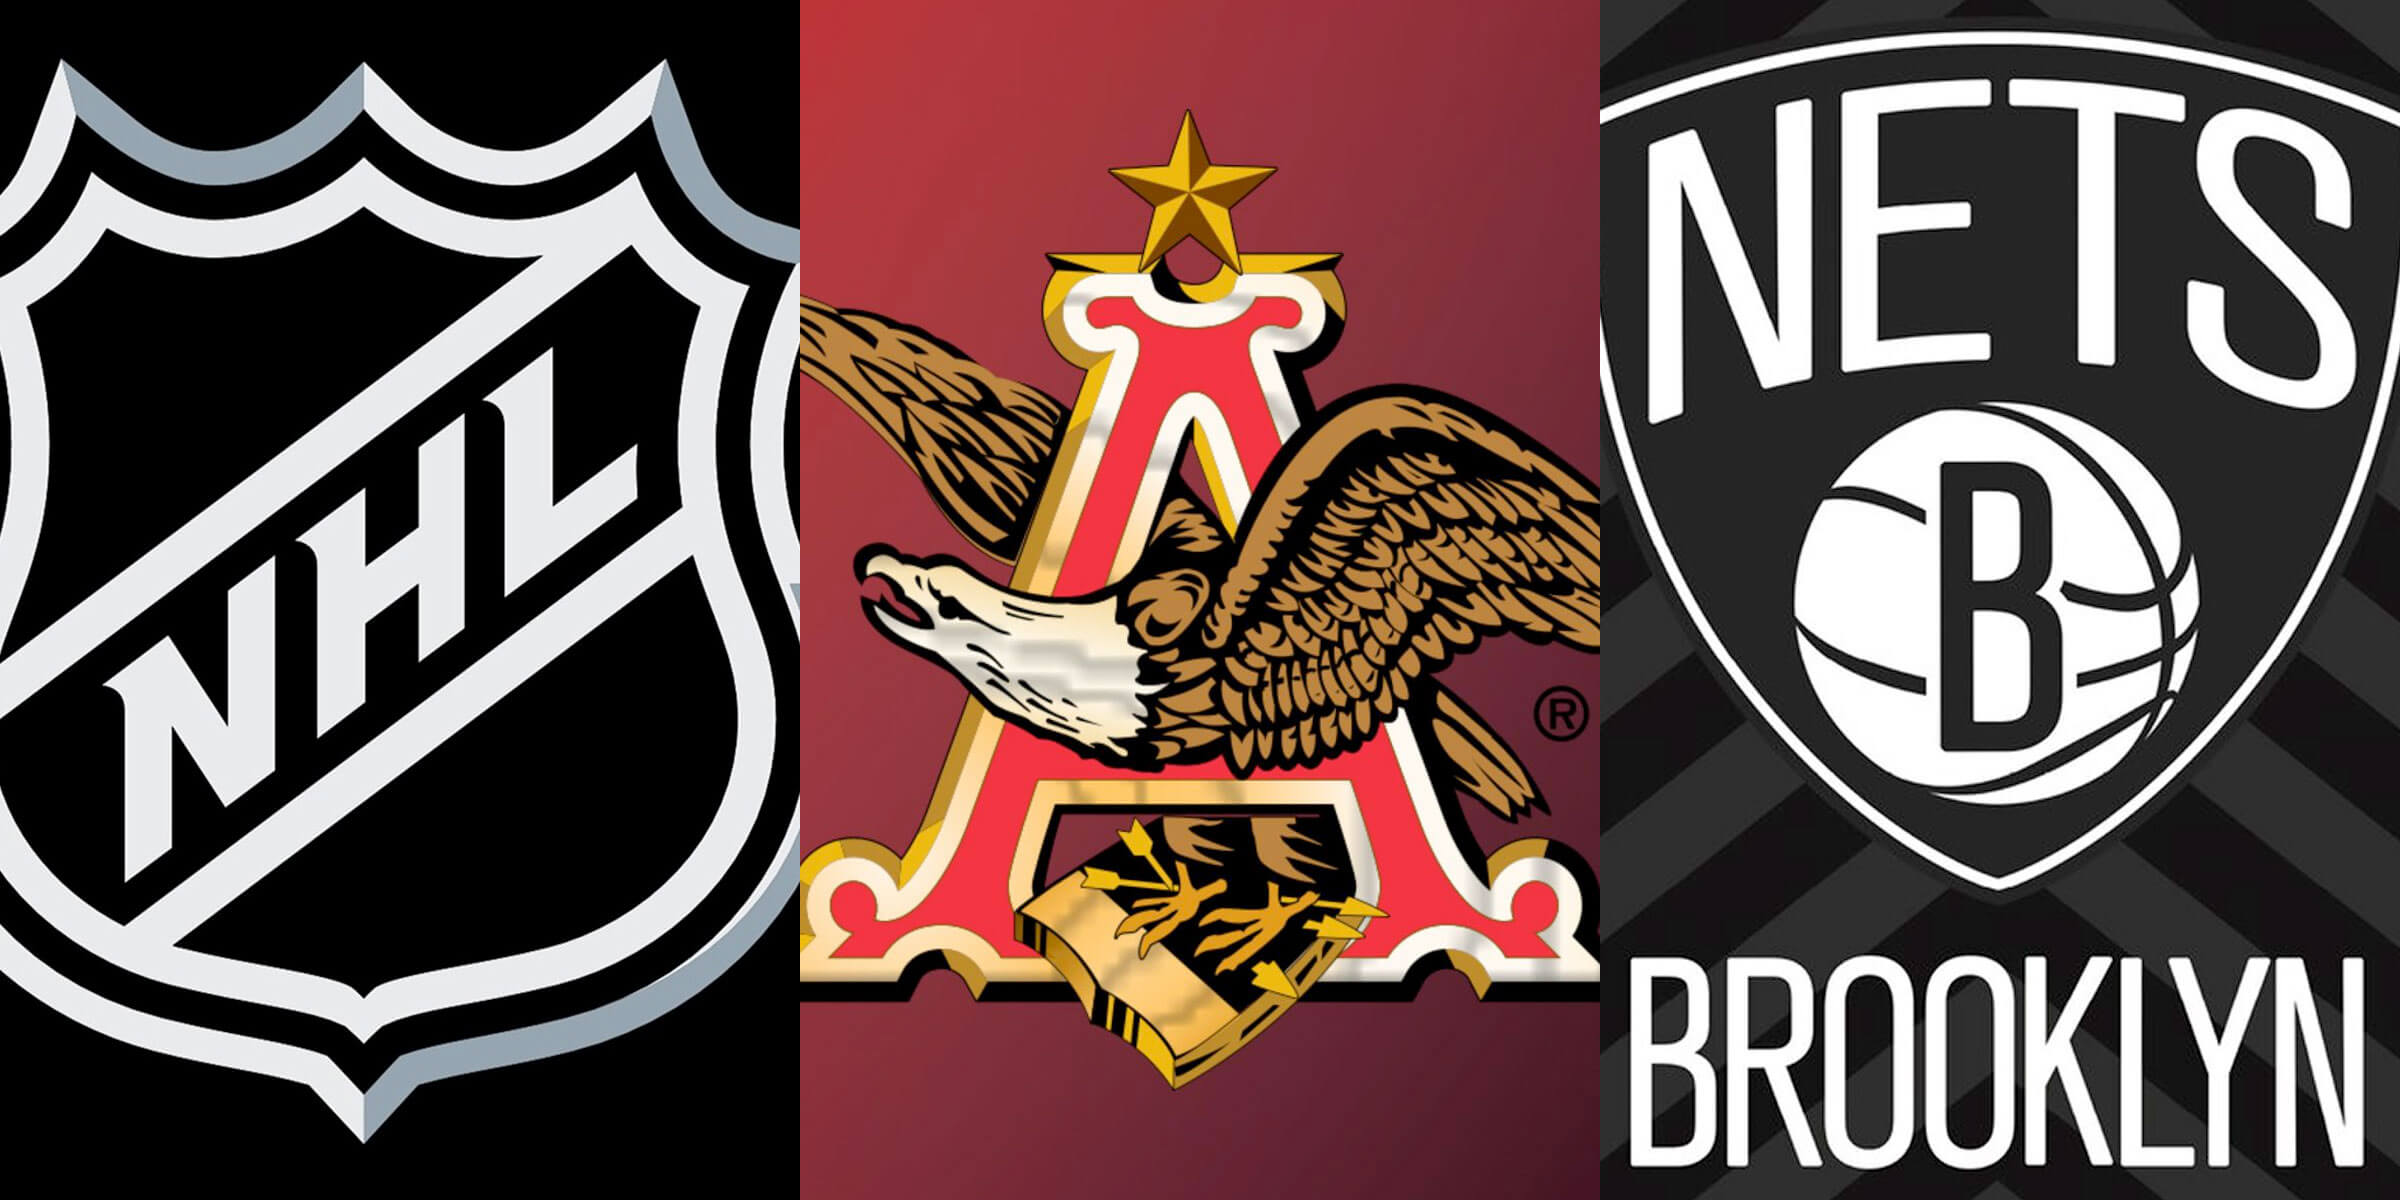 After eight years, Anheuser-Busch InBev has returned as sponsor for the NHL and has also struck a multi-year deal with the NBA's Brooklyn Nets.